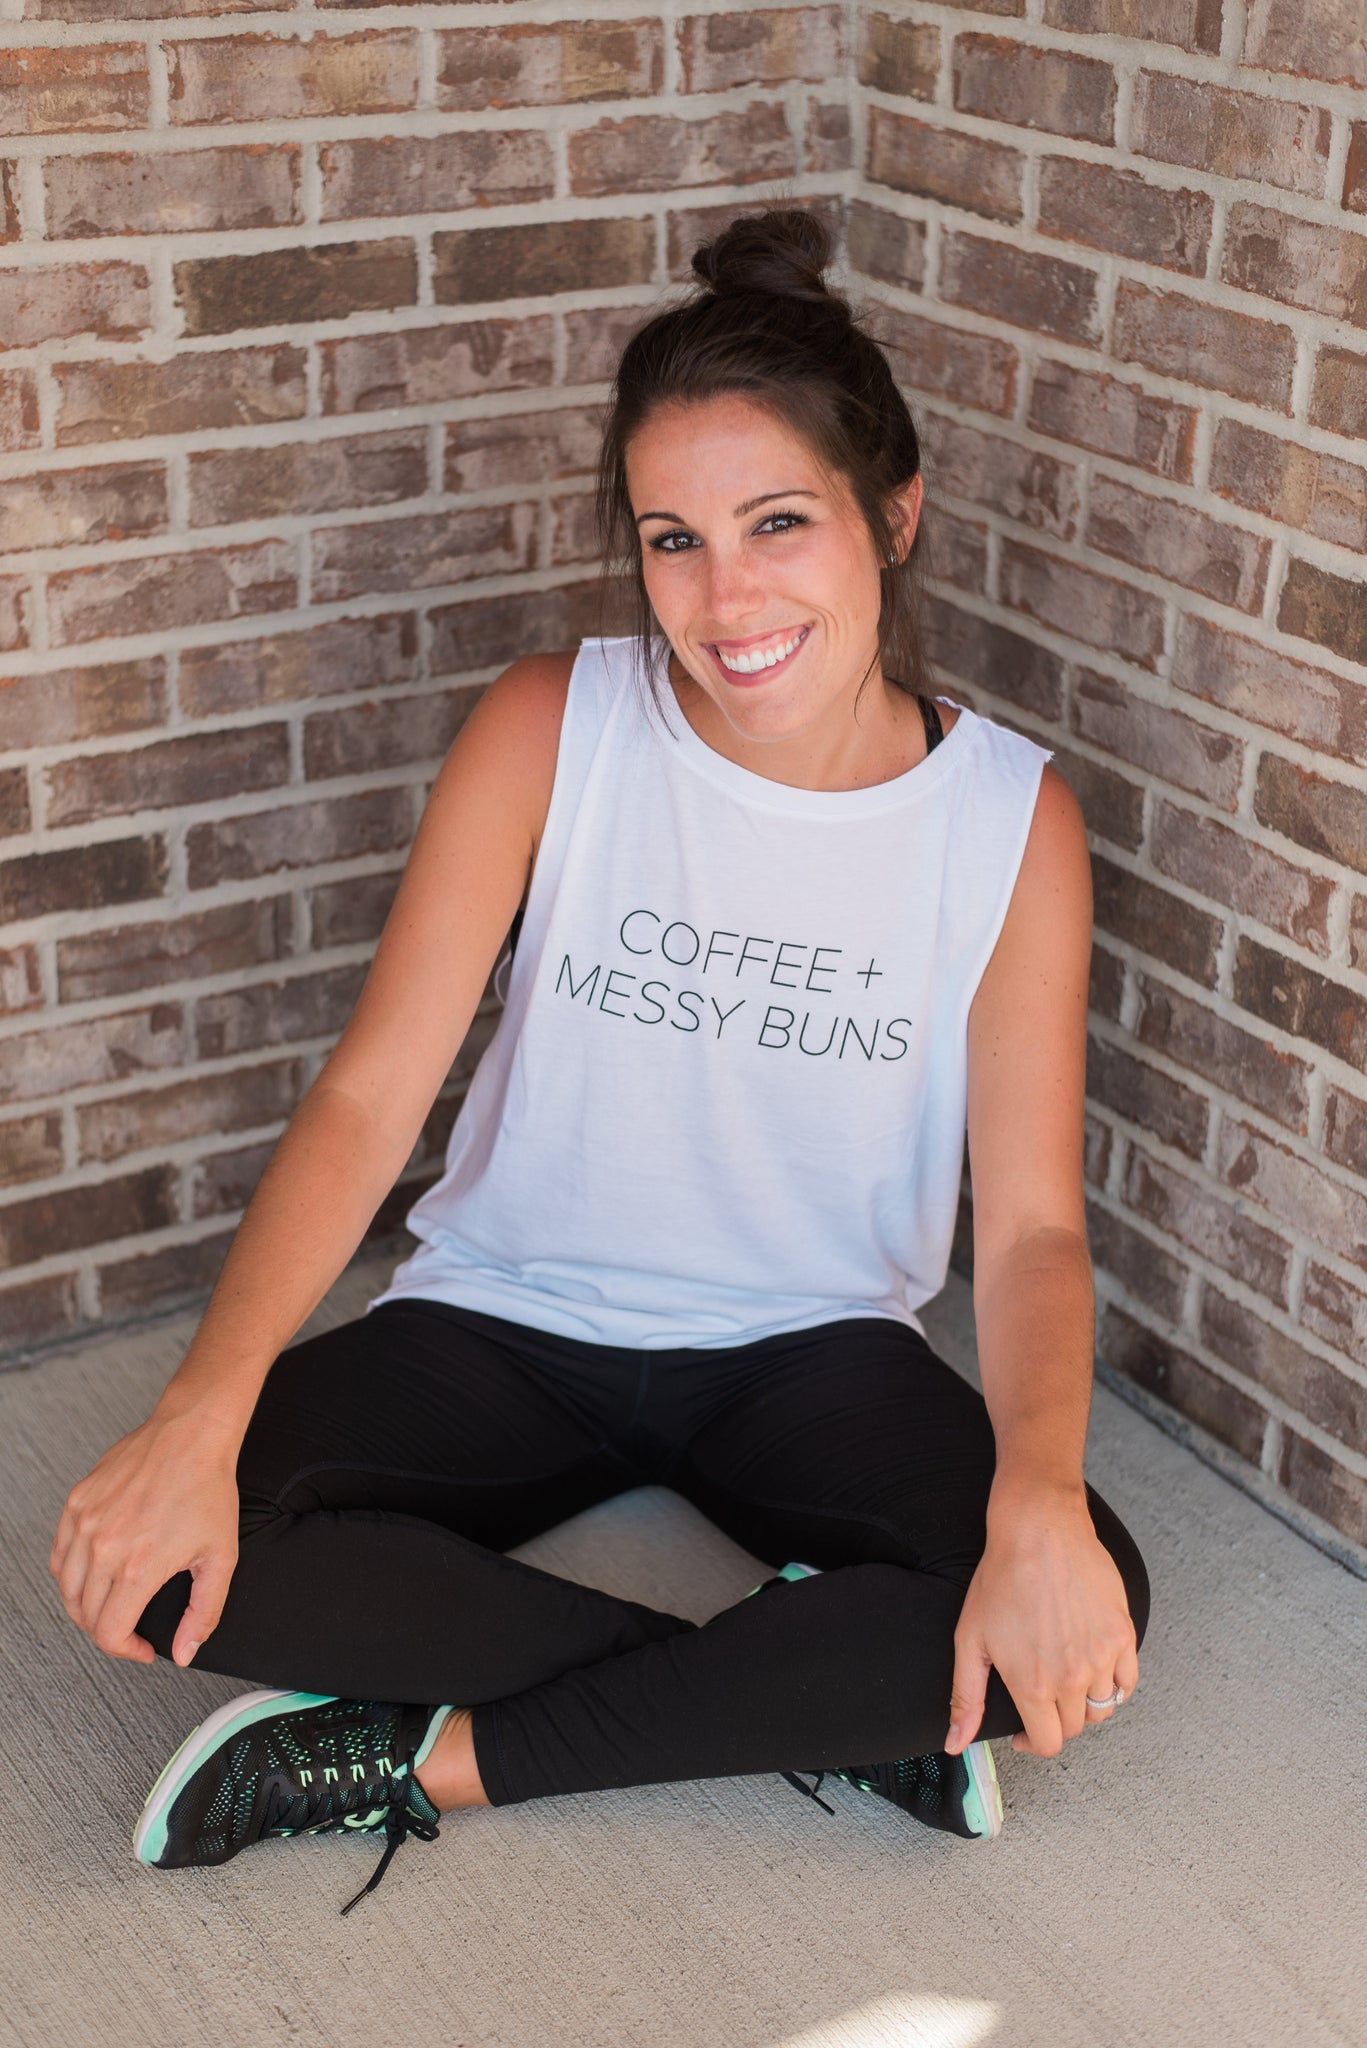 White, lightweight, dropped arm holes, athleisure wear - Coffee + Messy Buns Tee